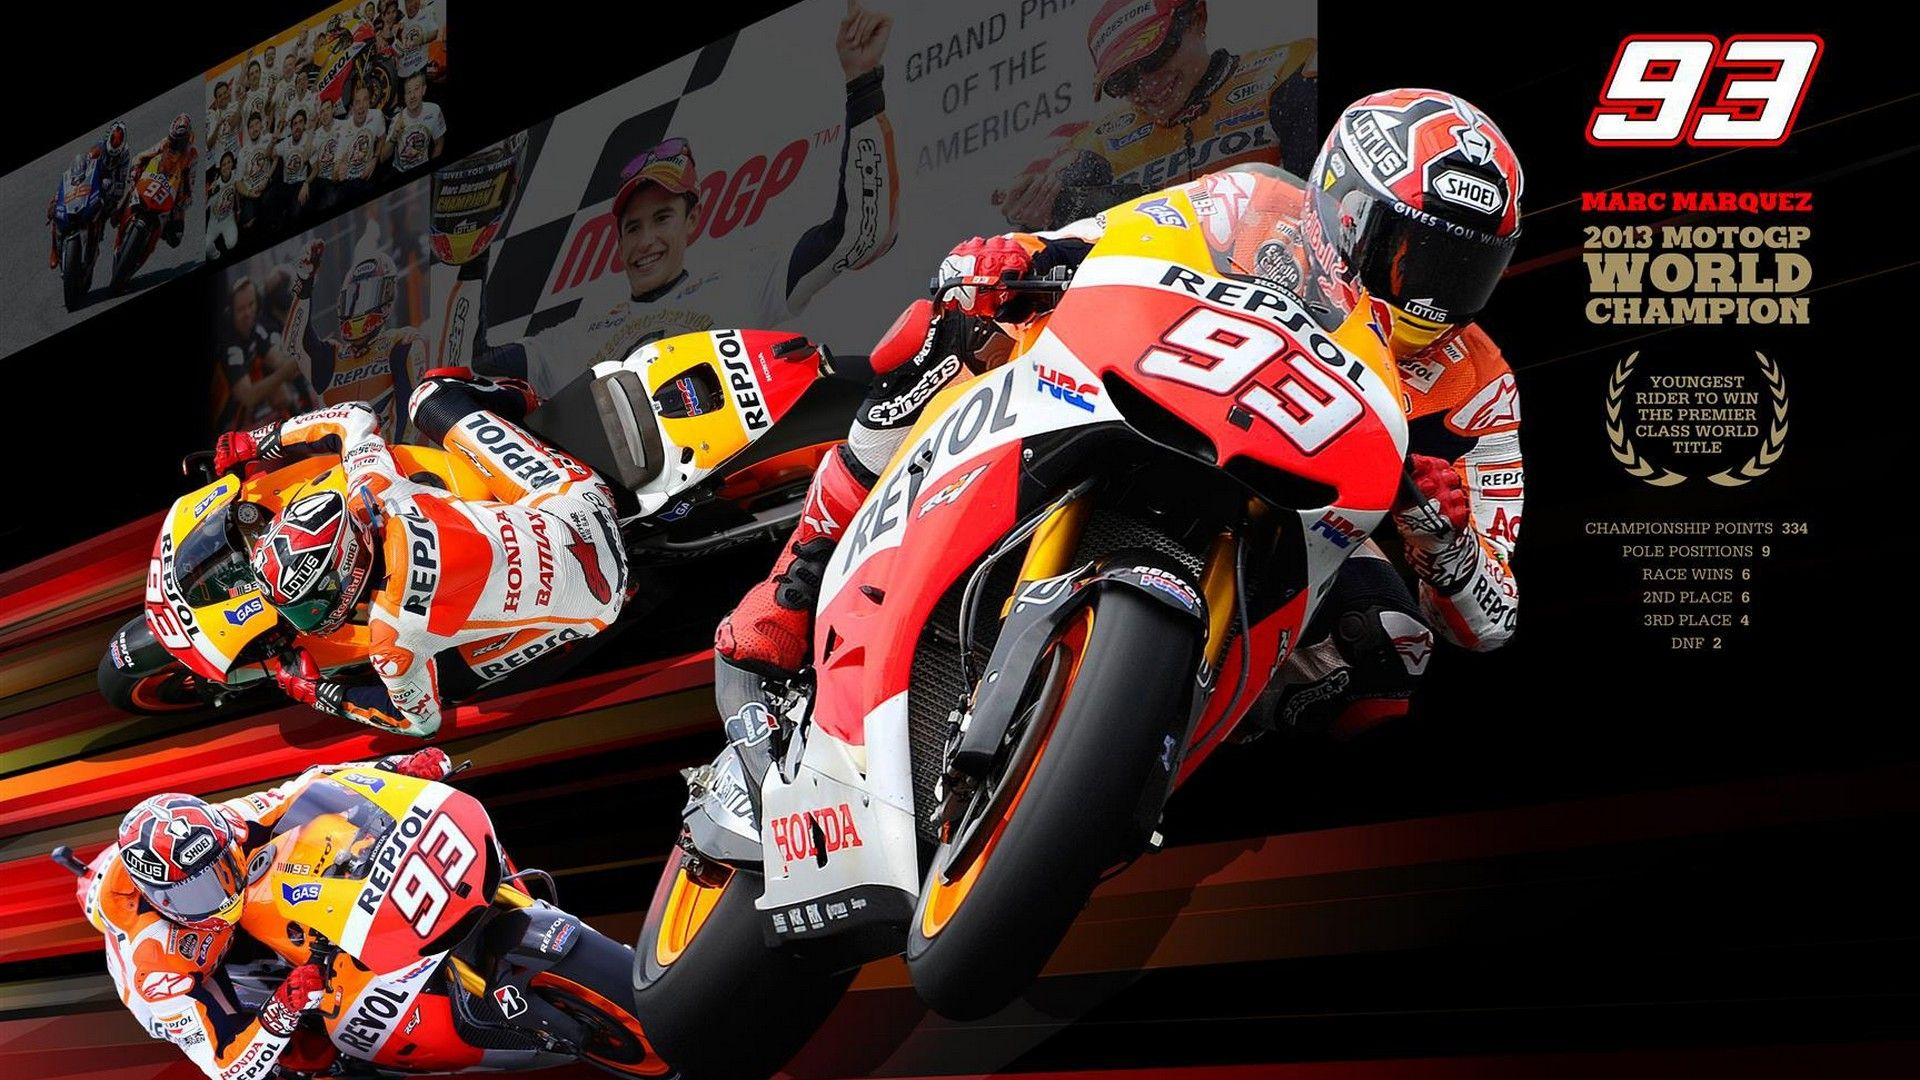 Marc Marquez Hd Wallpaper 2021 Live Wallpaper Hd Marc Marquez Marquez Motogp Get wallpaper motogp hd for android